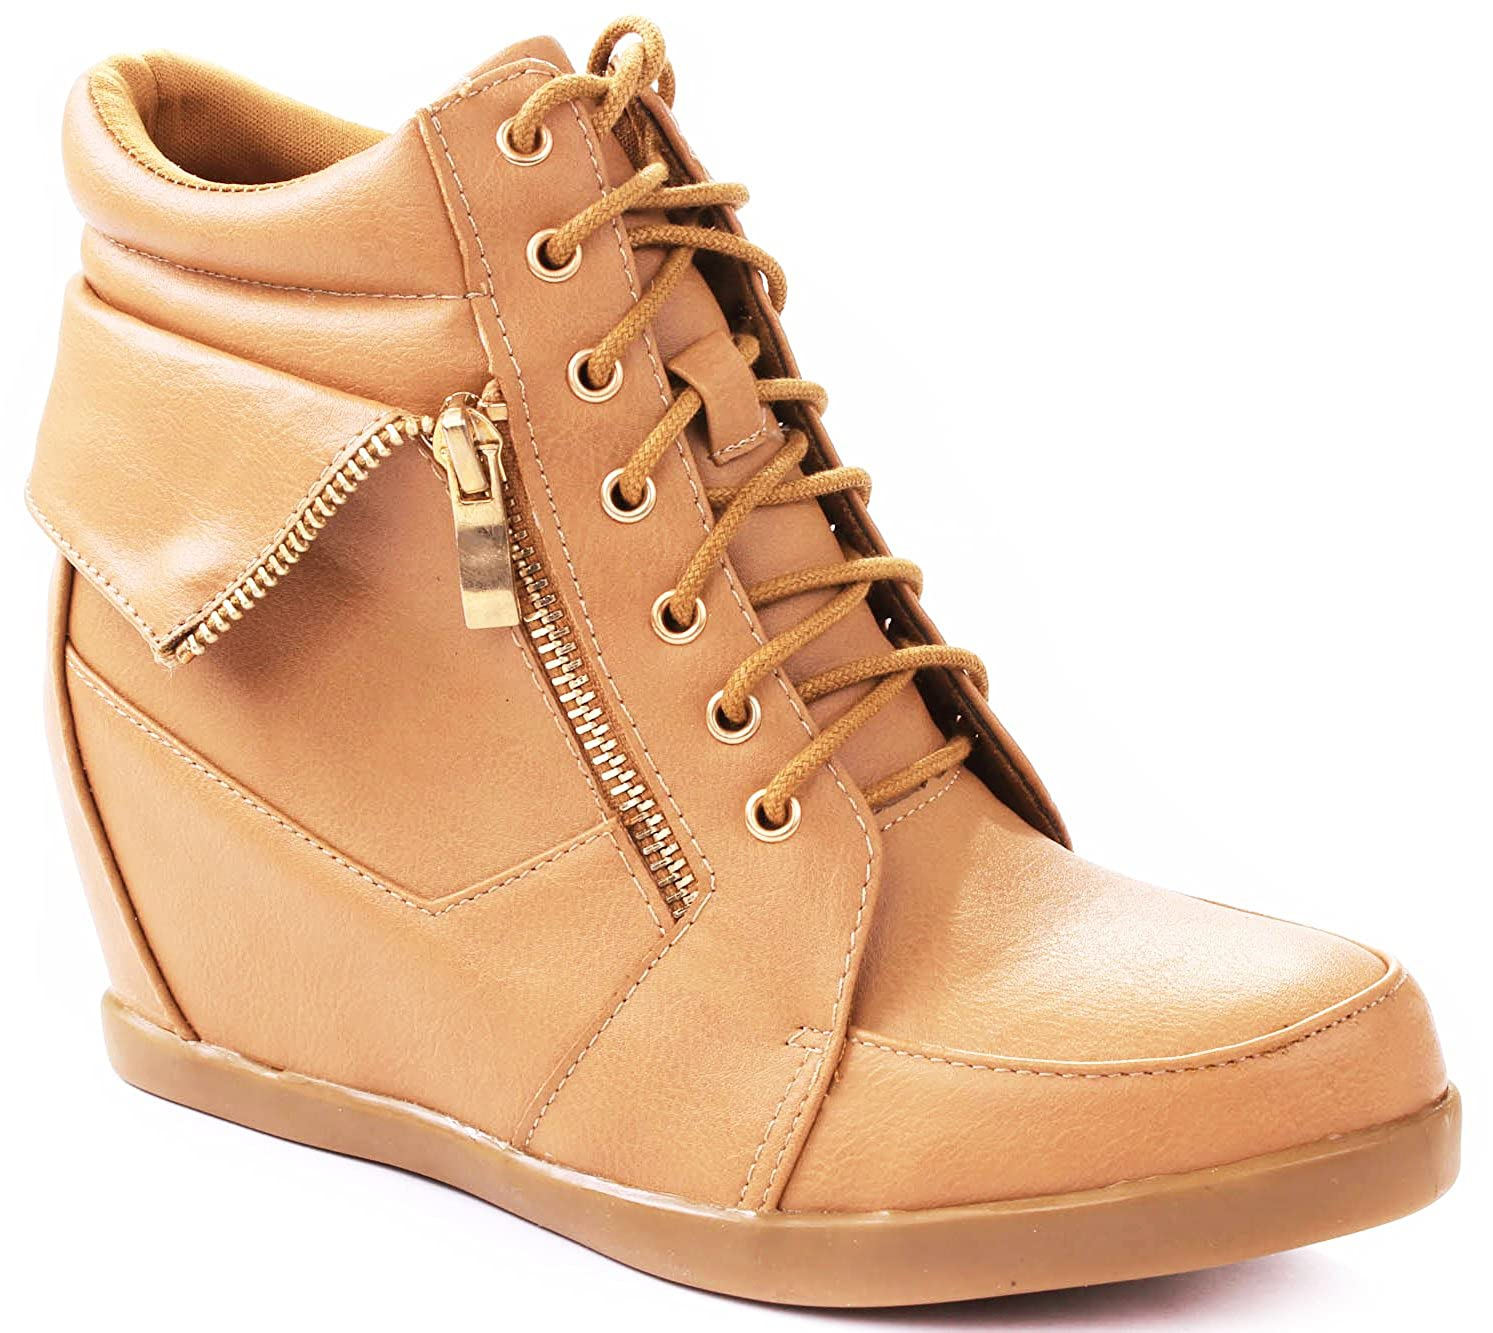 Lucky Top Girls Peter-30K Kids Fashion Leatherette Lace-Up High Top Wedge Sneaker Bootie